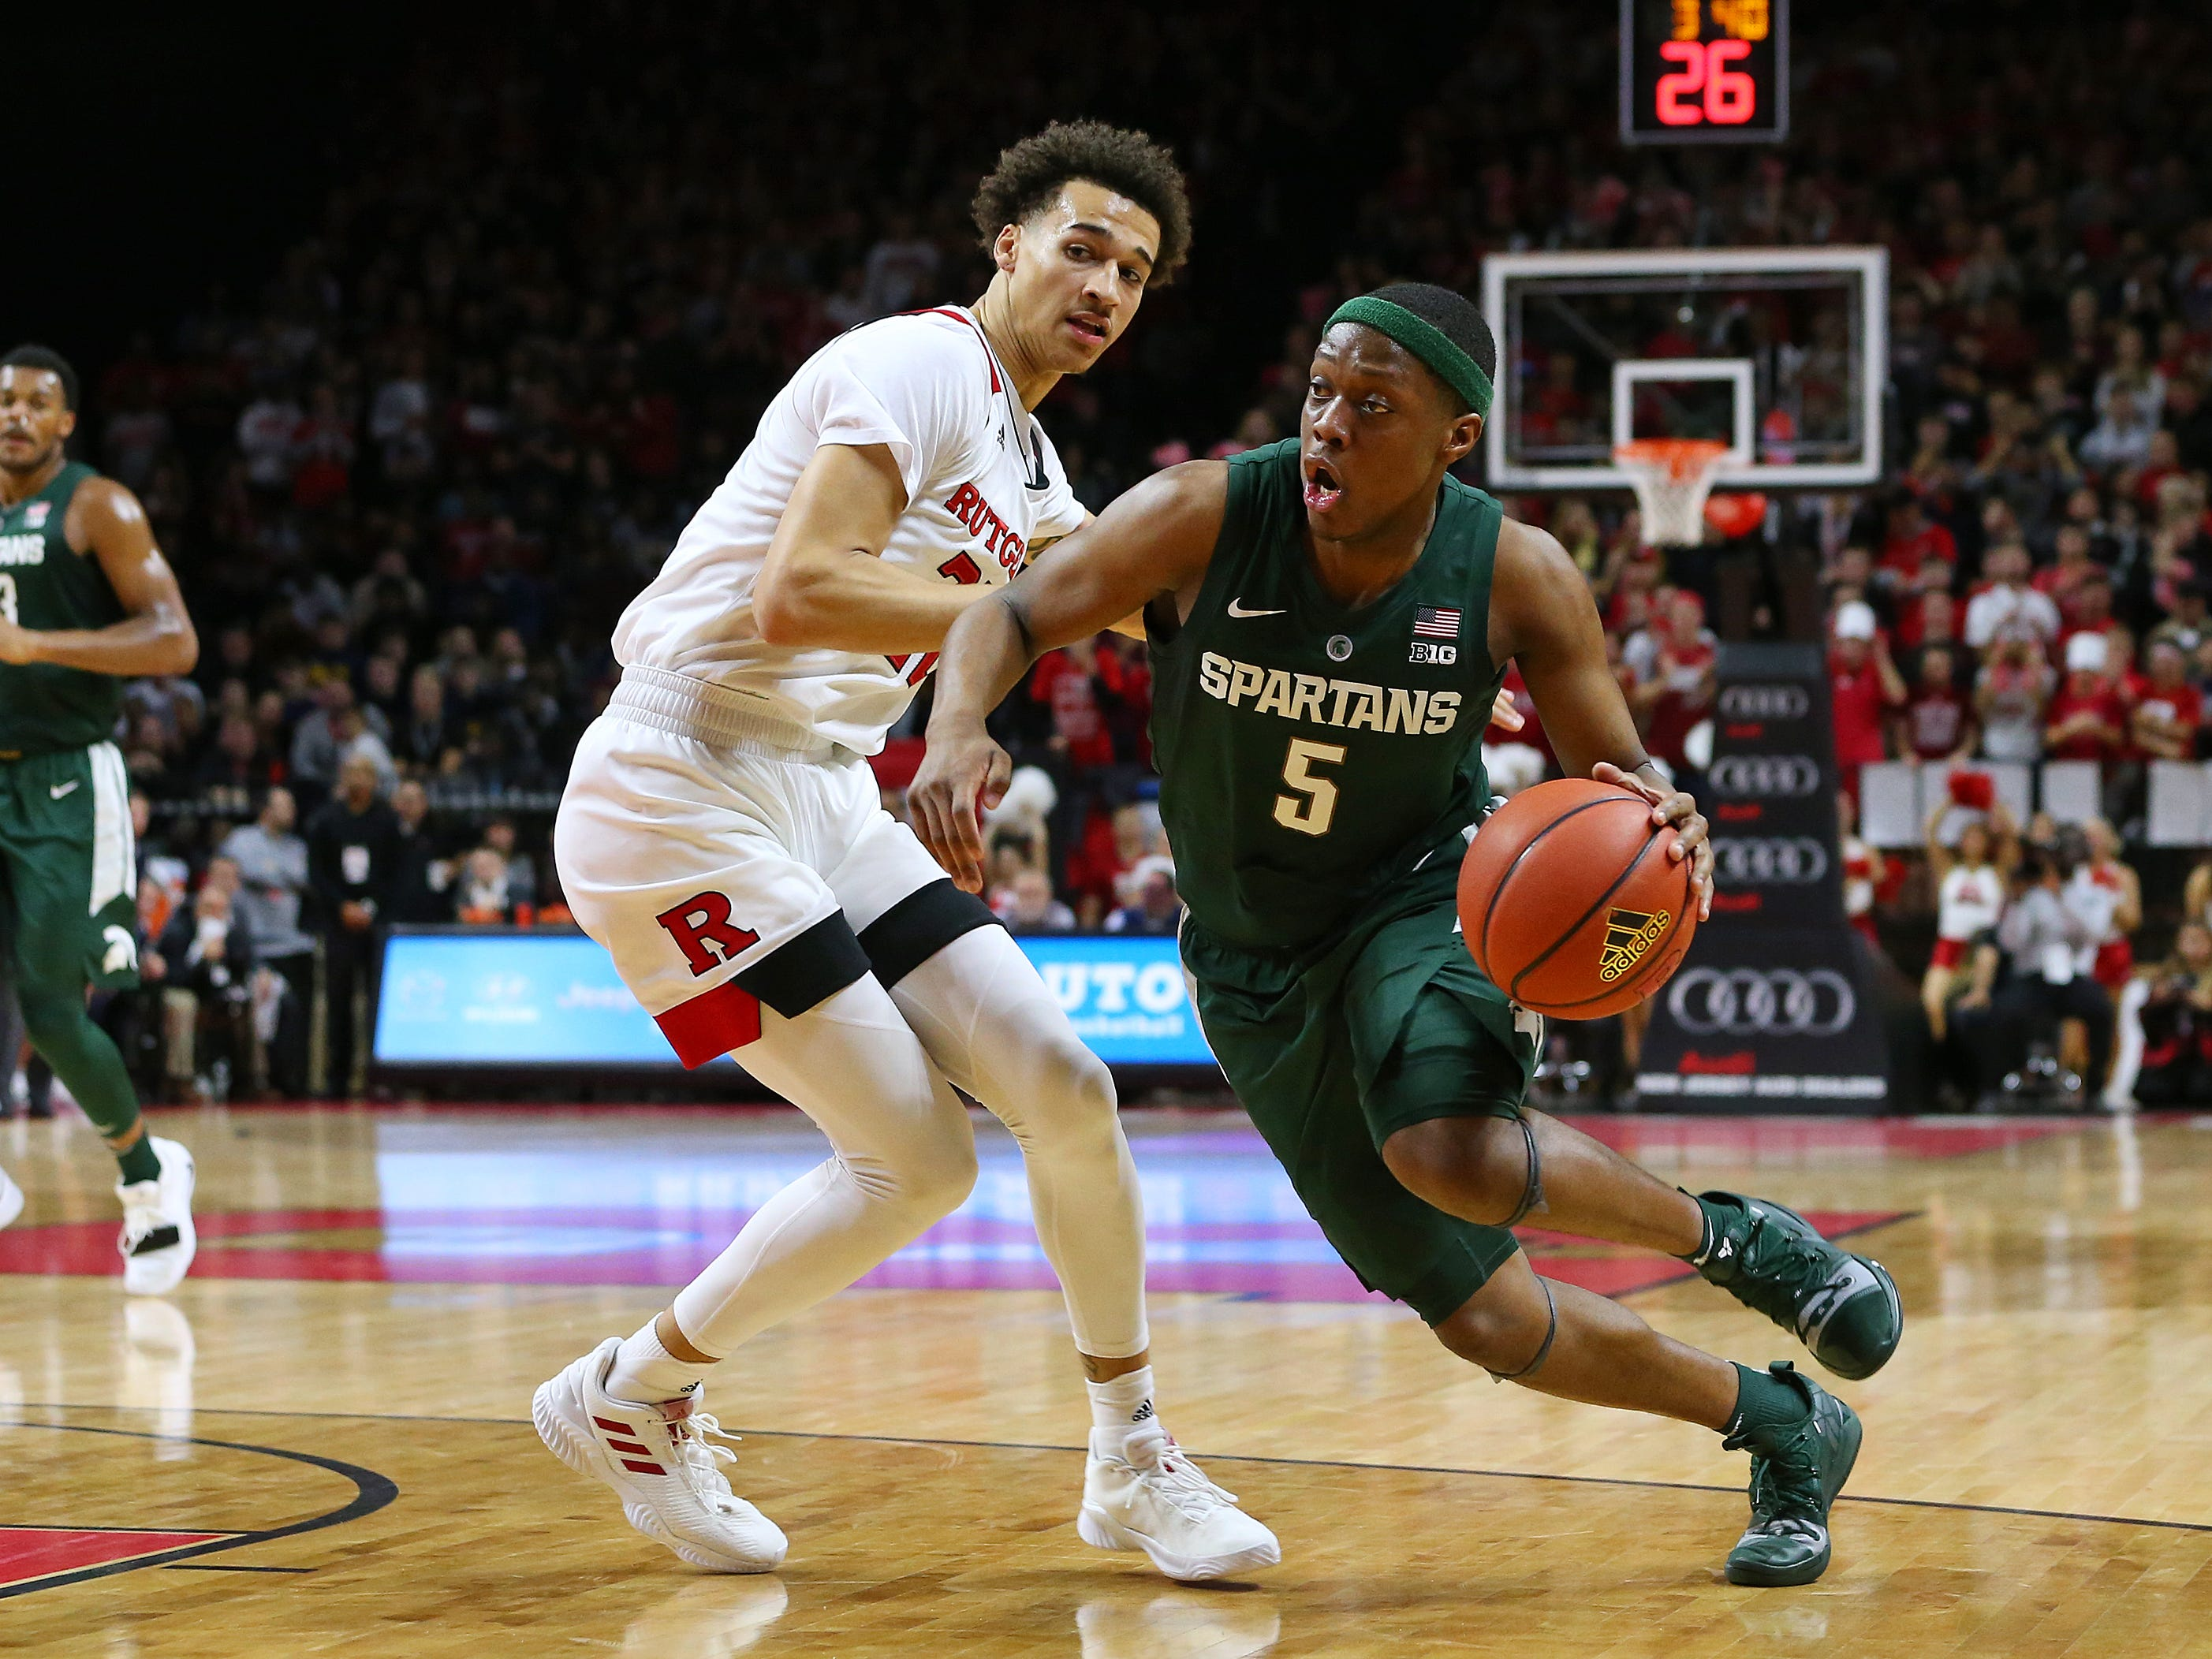 Cassius Winston #5 of the Michigan State Spartans drives to the basket as Caleb McConnell #22 of the Rutgers Scarlet Knights defends during the second half of a college basketball game at the Rutgers Athletic Center on November 30, 2018 in Piscataway, New Jersey. Michigan State defeated Rutgers 78-67.